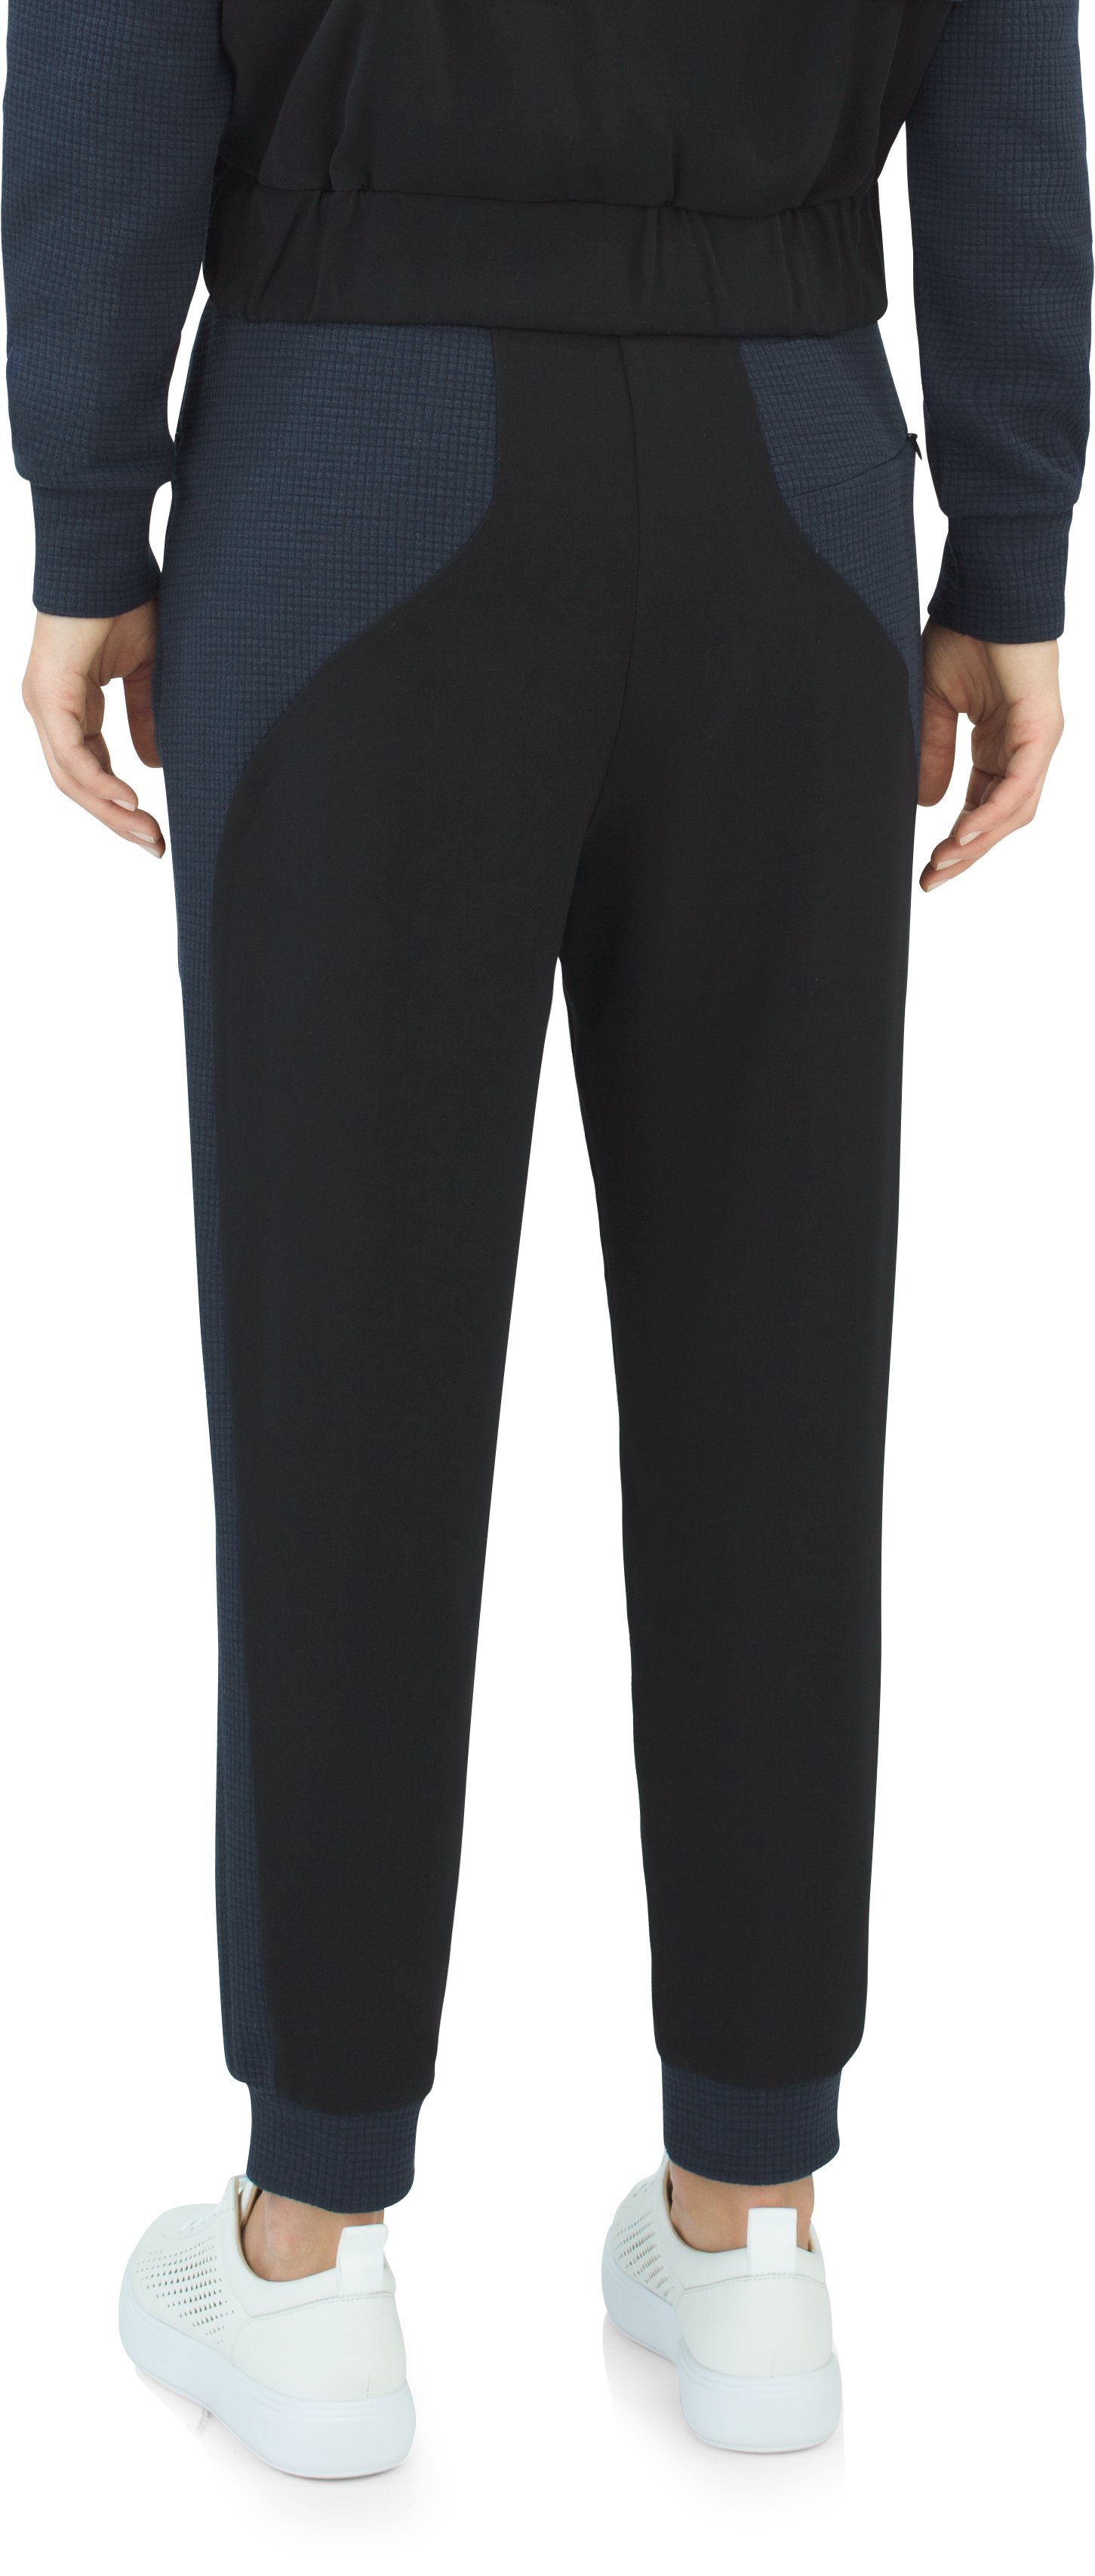 Women's Sweatpants, Black ,